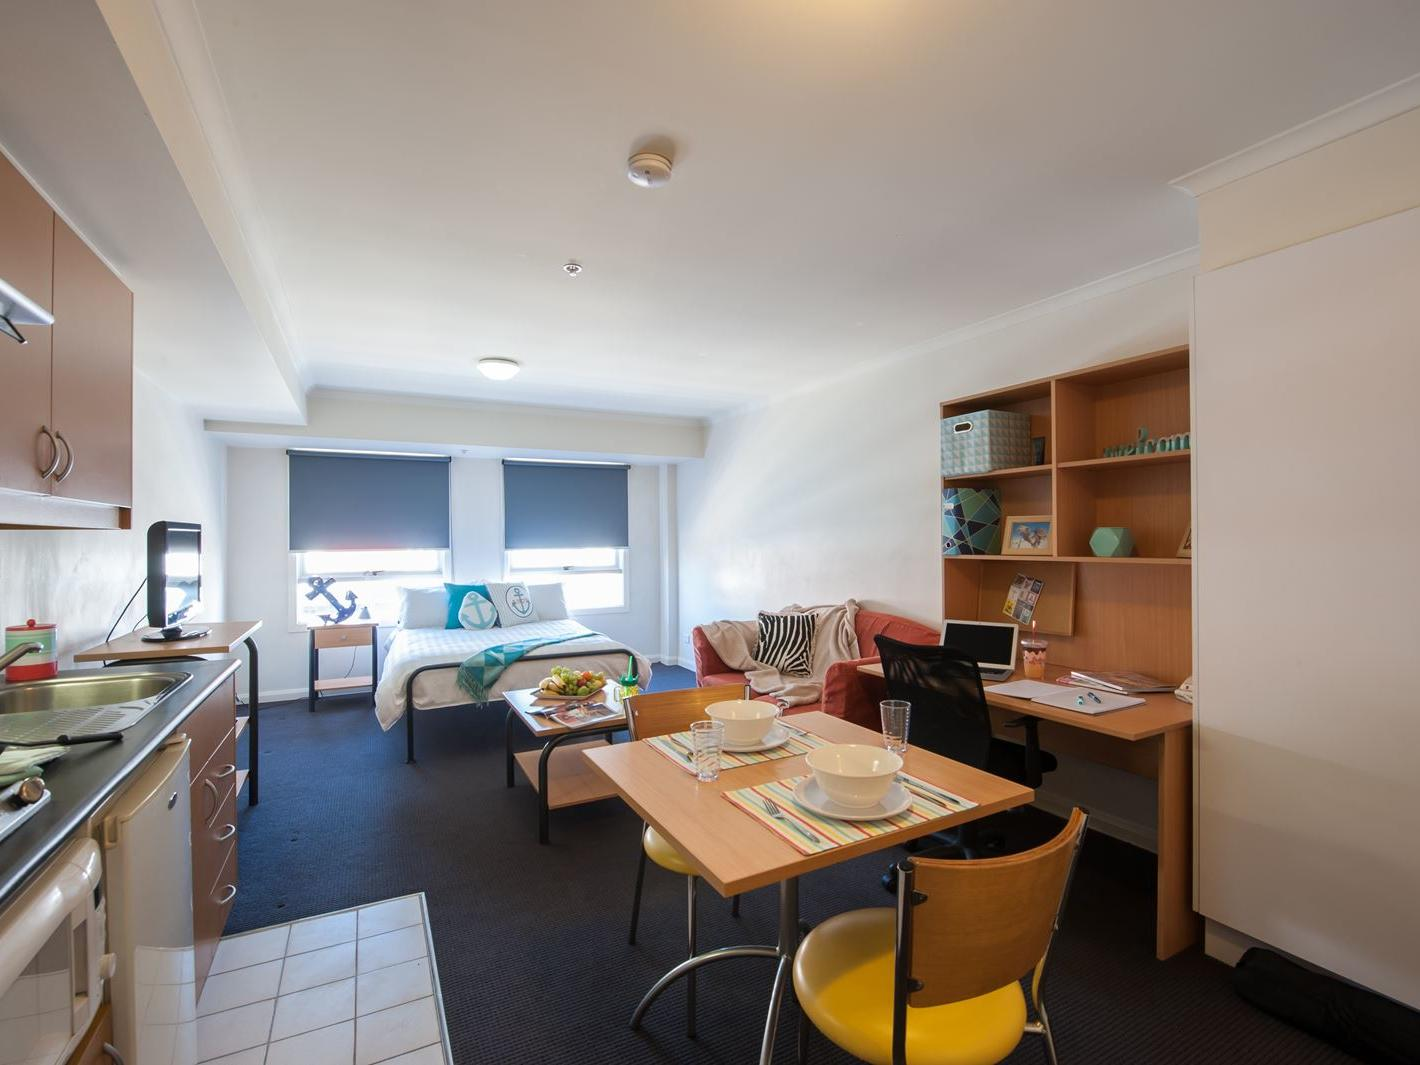 Double bed studio apartment at UniLodge on Flinders